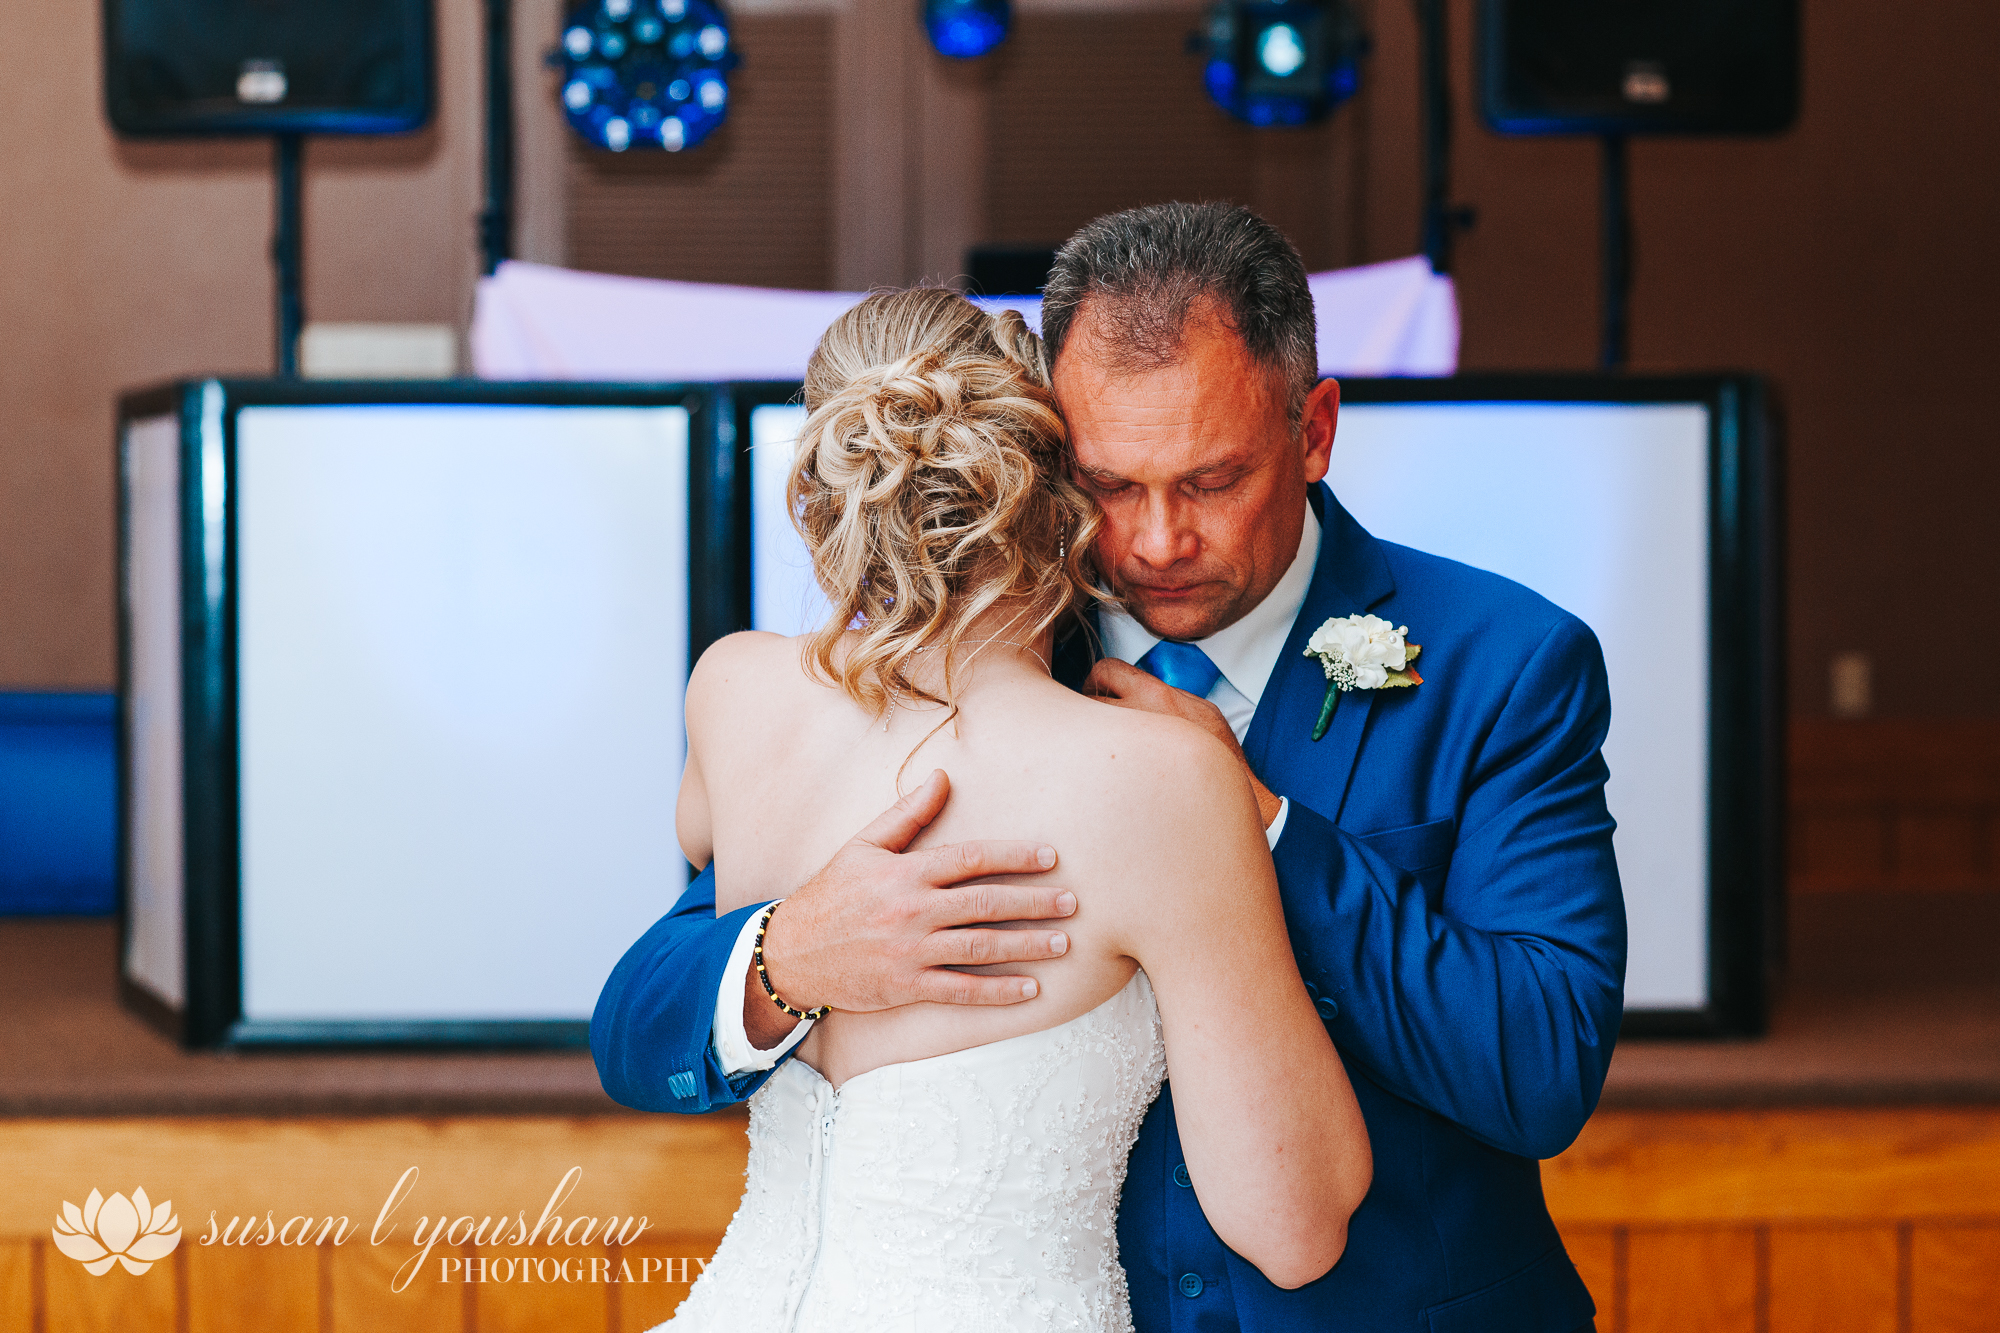 BLOG Kylie and corey Bennet 10-13-2018 SLY Photography LLC-159.jpg